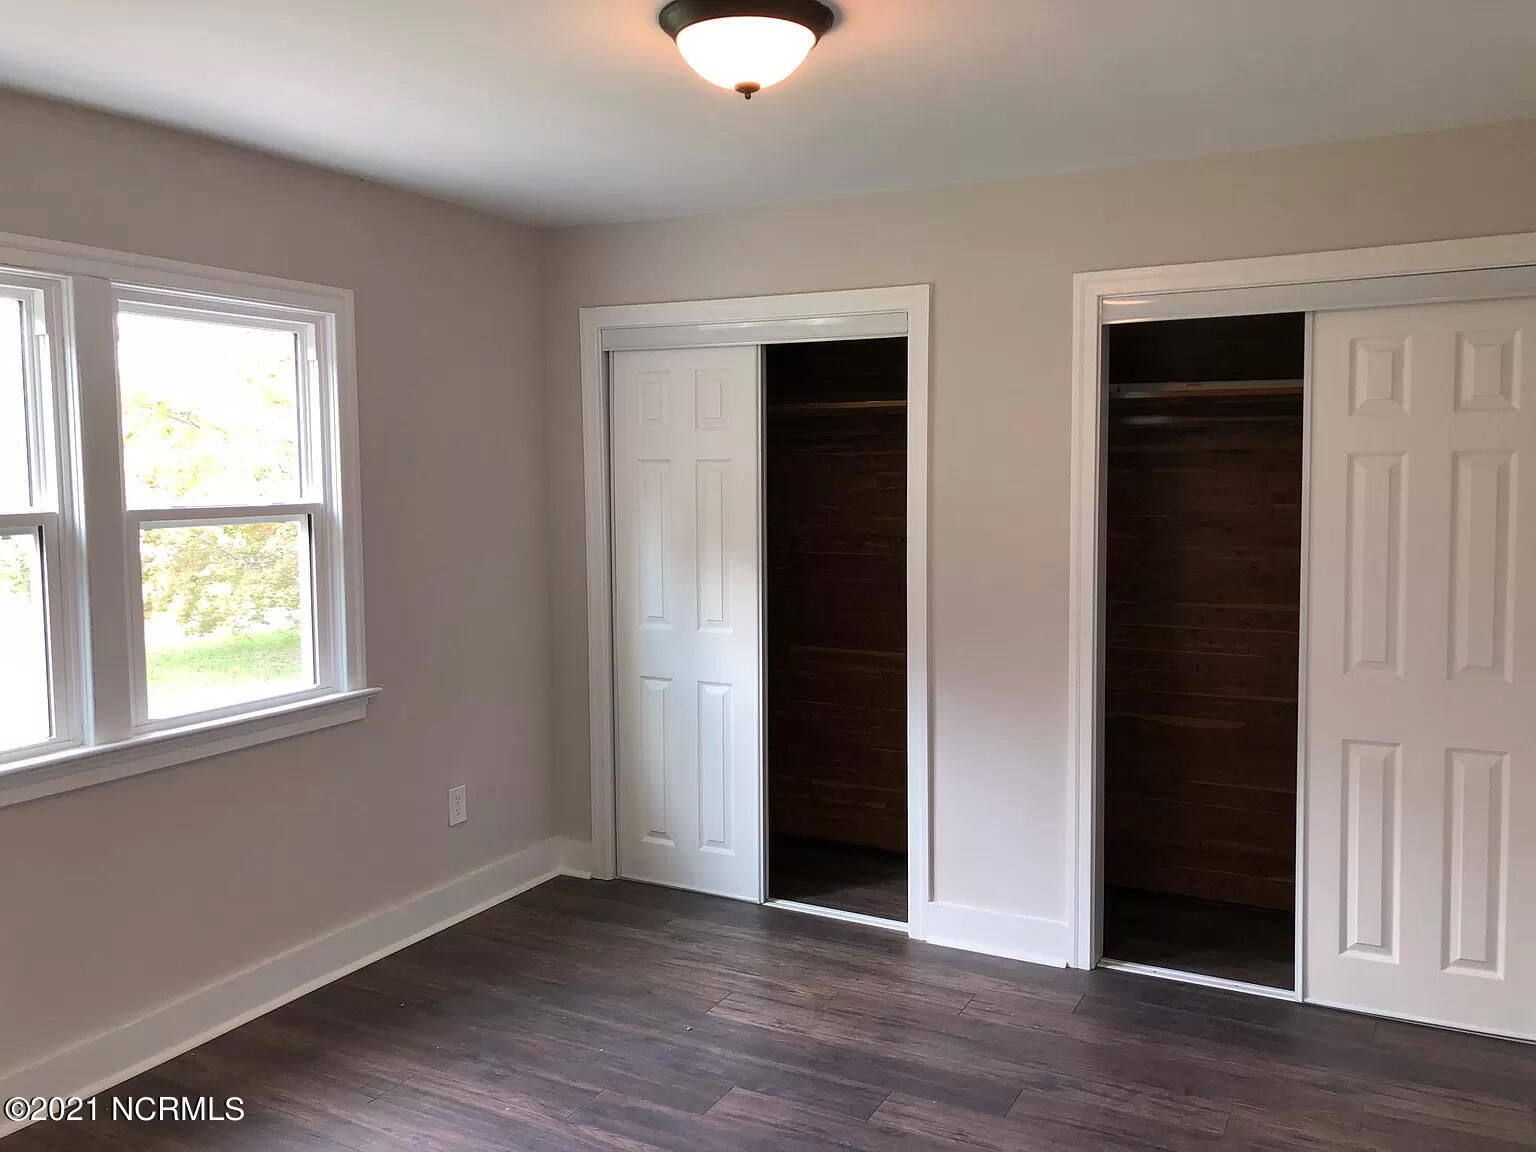 214 Rochelle Drive, Morehead City, North Carolina 28557, 3 Bedrooms Bedrooms, 6 Rooms Rooms,2 BathroomsBathrooms,Single family residence,For sale,Rochelle,100278079